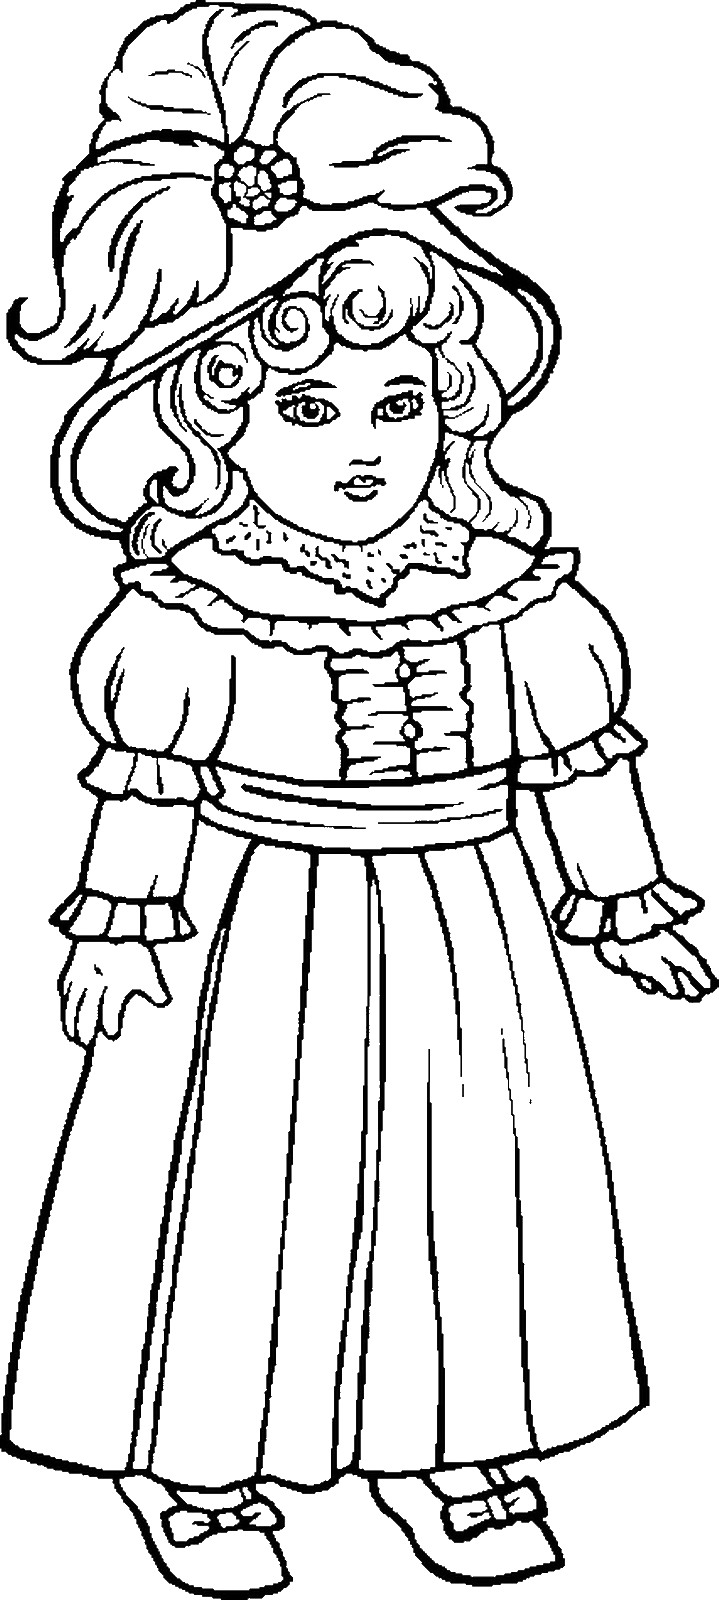 dolls colouring pages baby doll coloring page at getdrawings free download dolls colouring pages